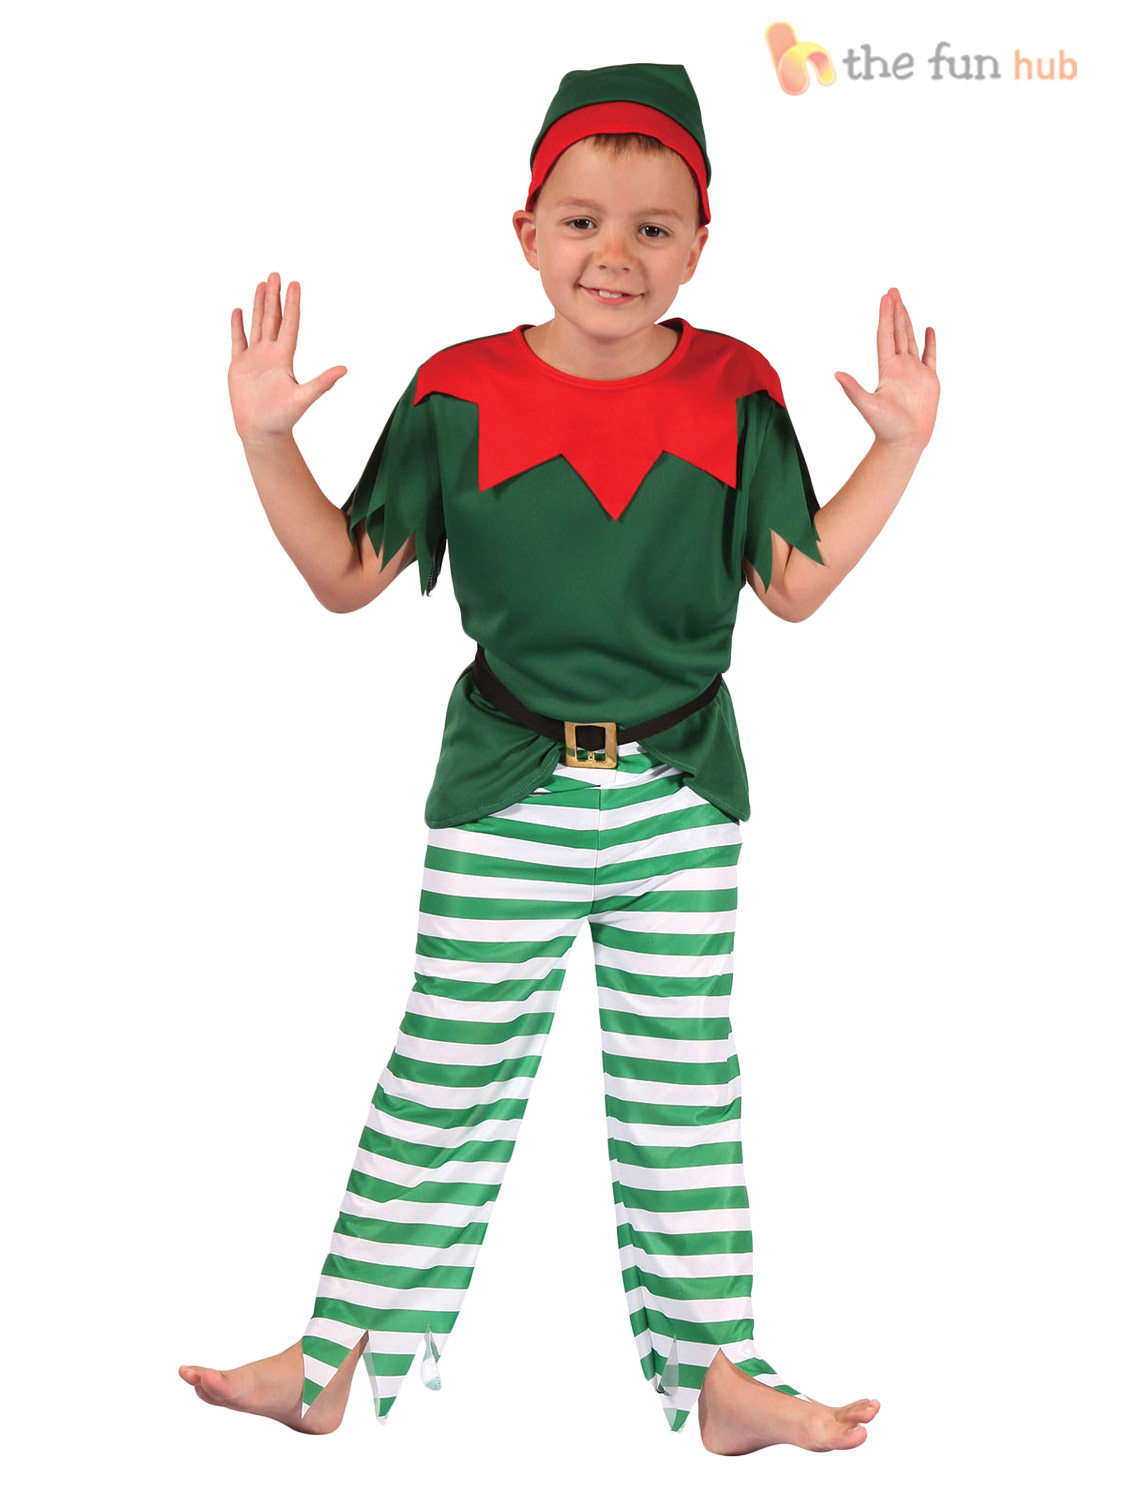 Age 2 12 Kids Elf Costume Boys Girls Christmas Fancy  sc 1 st  Meningrey & Kids Christmas Elf Costume - Meningrey